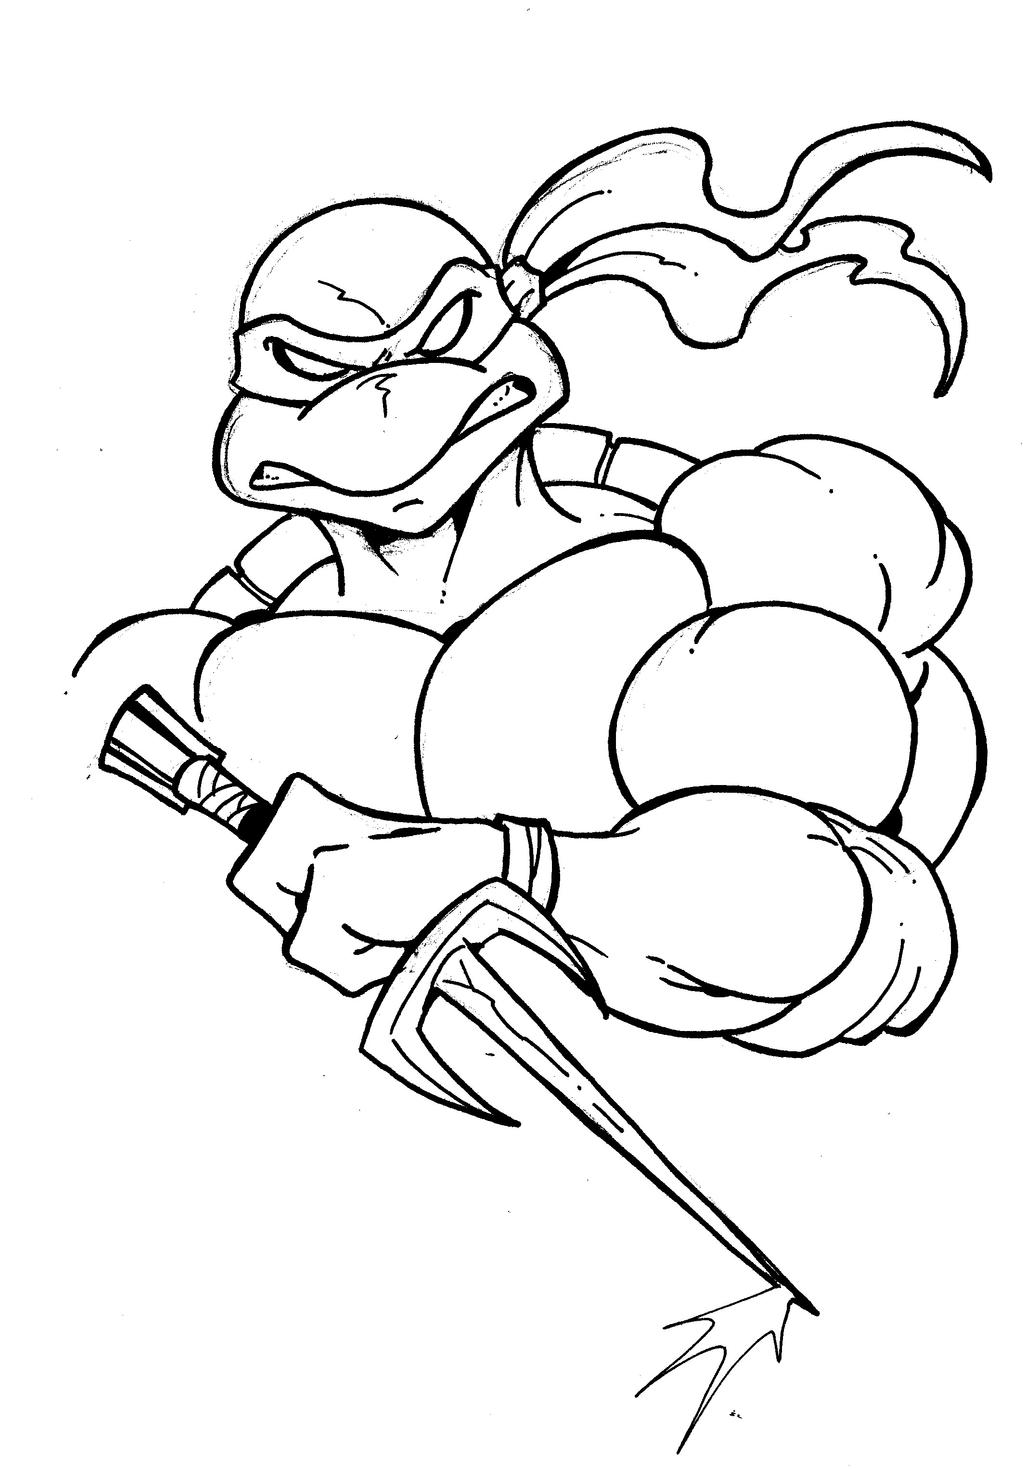 tmnt coloring pages ralph 2012 - photo#10